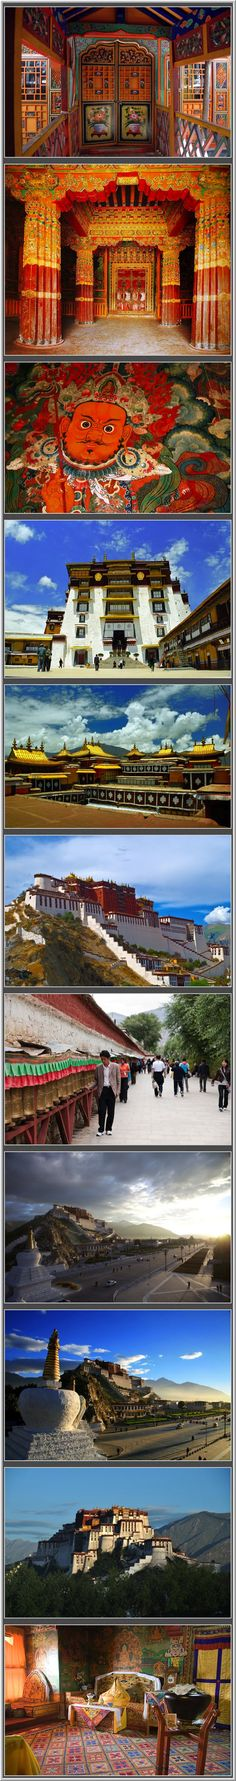 The Potala Palace in Tibet